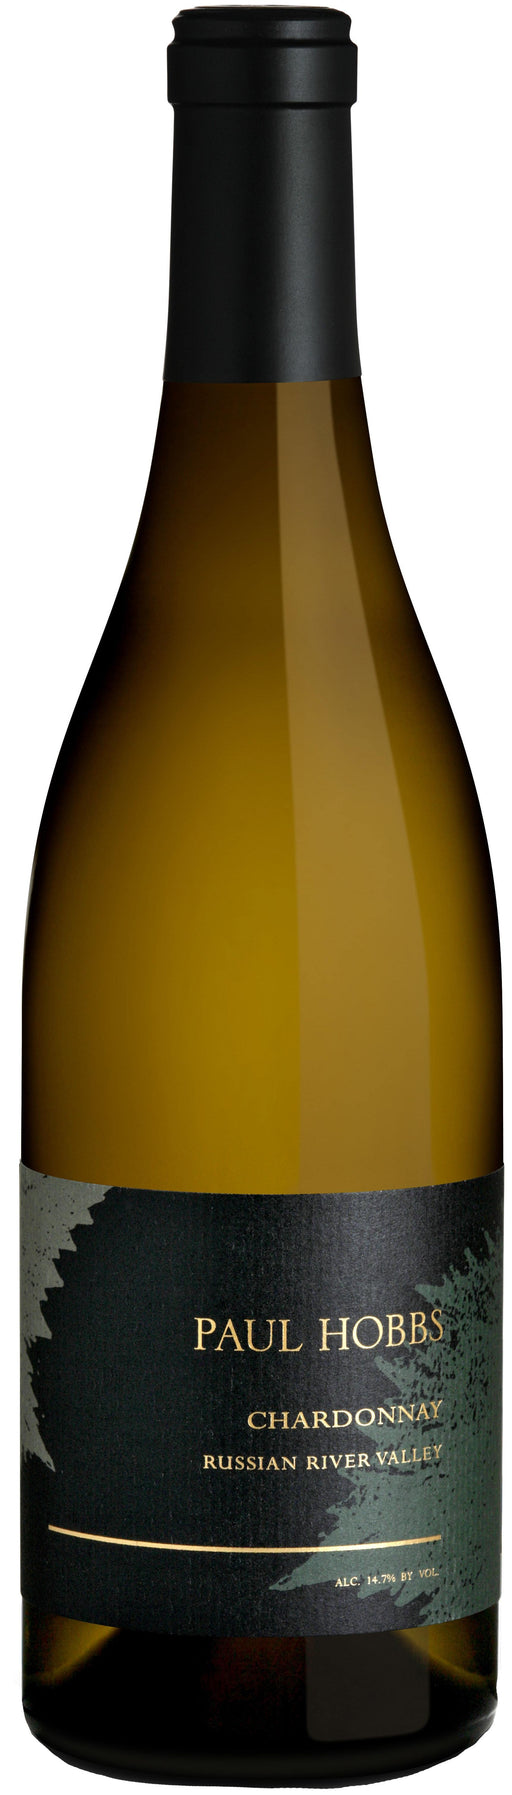 Paul Hobbs Russian River Valley Chardonnay 2016